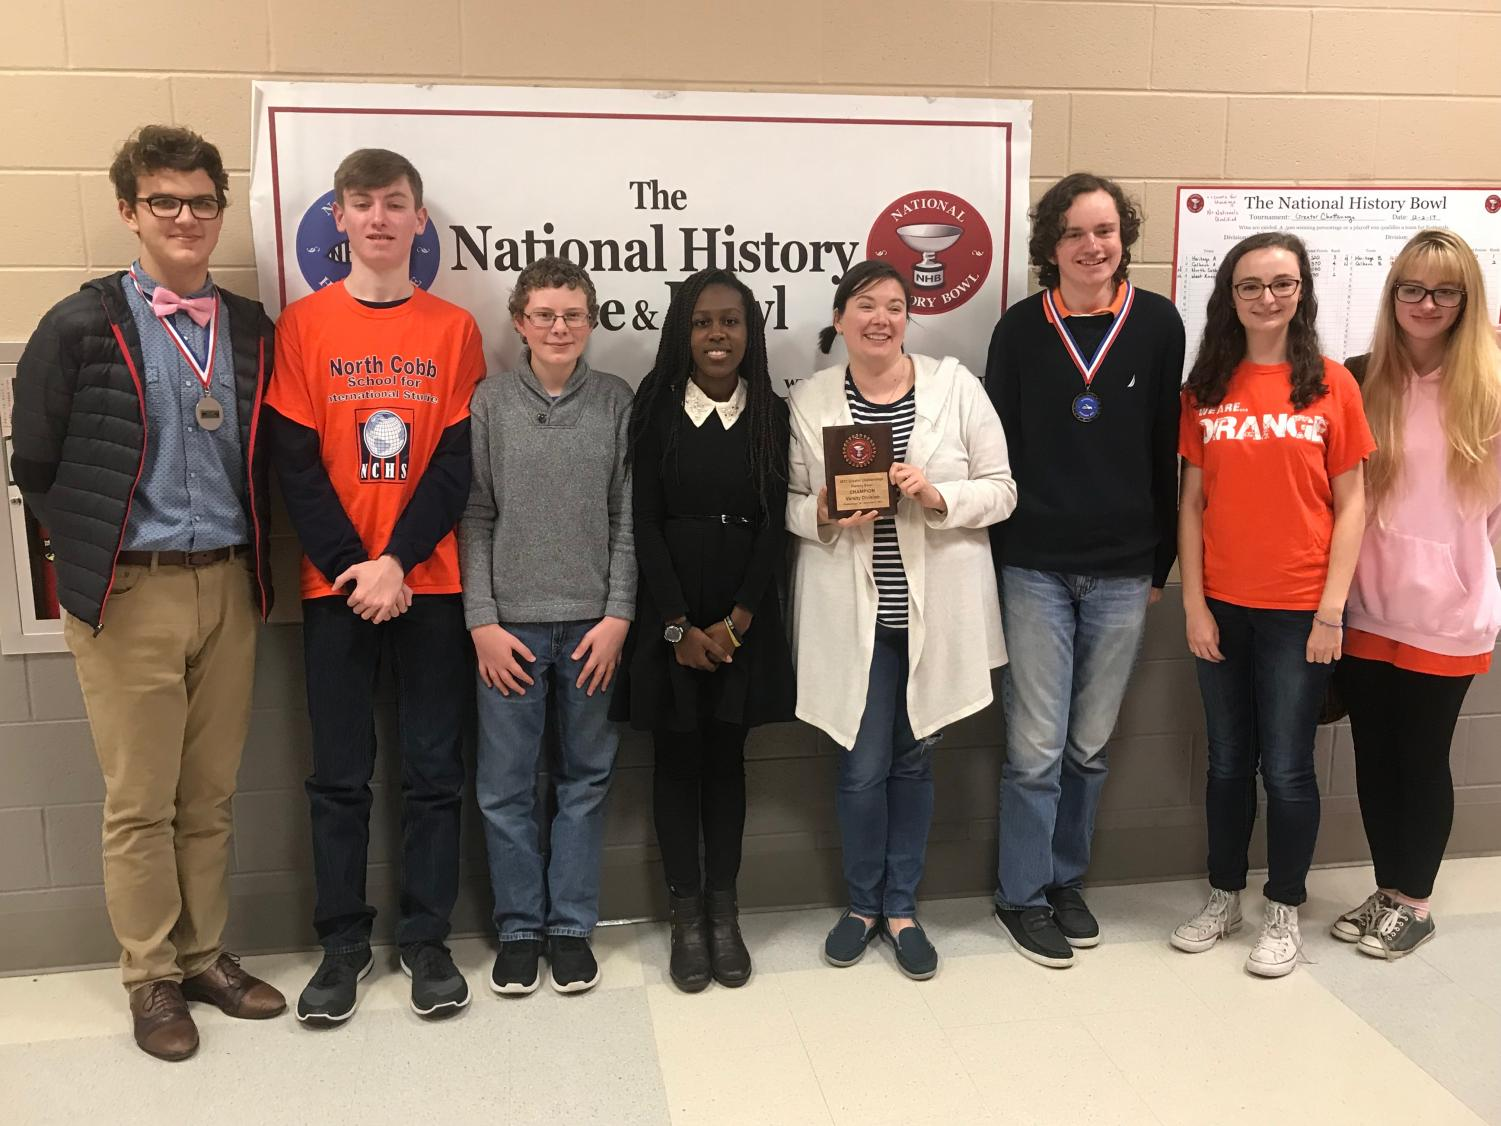 Photo courtesy of Carolyn Glaze. The team of seven joined by NC's chemistry teacher Ms. Tidrick proudly celebrate their victory in The National History Bee and Bowl. Junior Harrison Glaze and sophomore Chandler Quaile stand proudly displaying their medals and flaunting their triumph. The team awaits the the national tournament in Washington D.C.